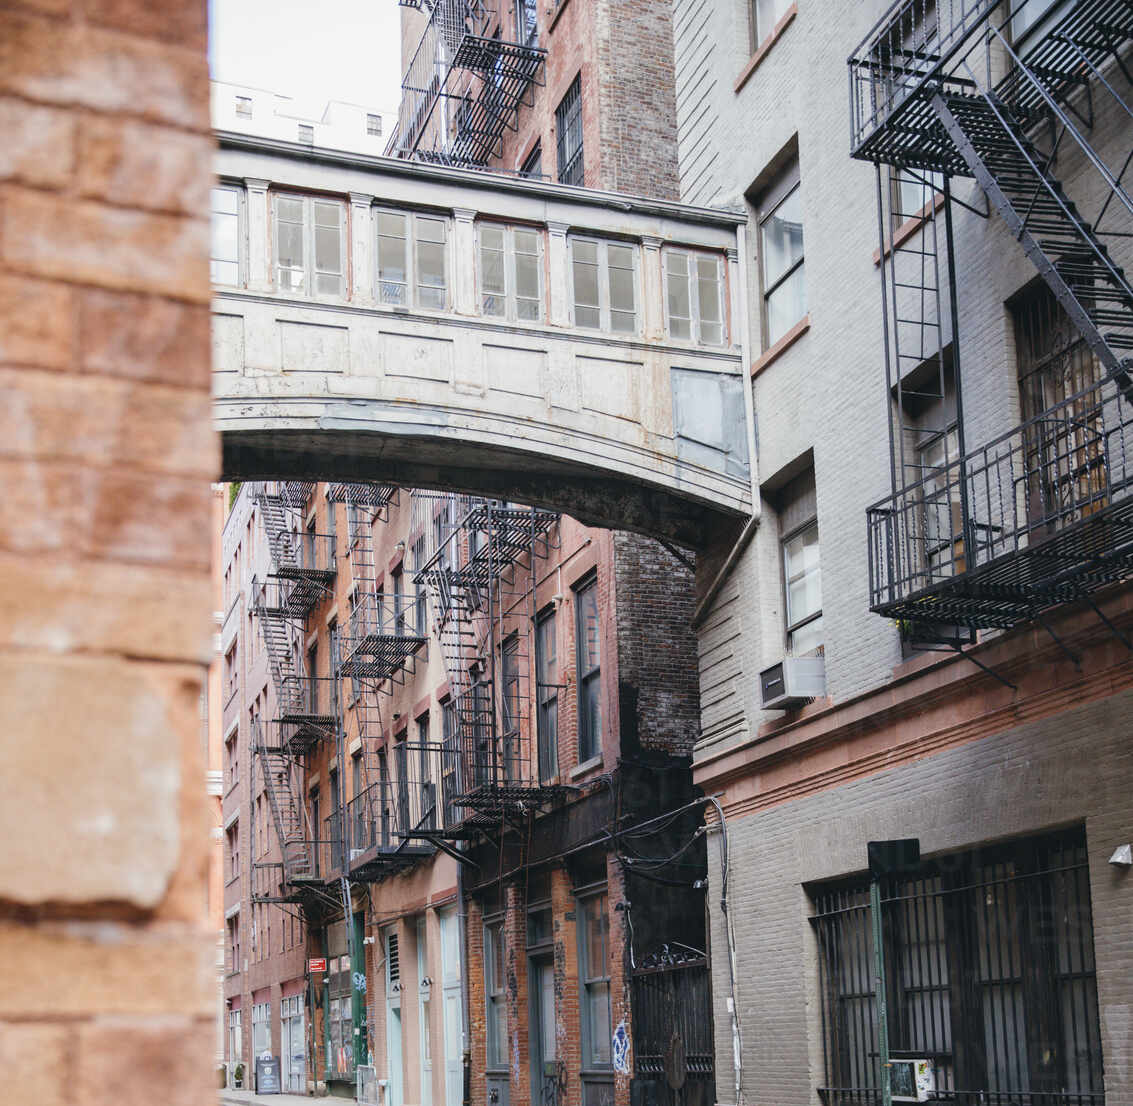 NYC, New York,/United States - Sept, 25, 2019: View of City Streets in Tribeca Neighborhood of New York City - CAVF65456 - Cavan Images/Westend61